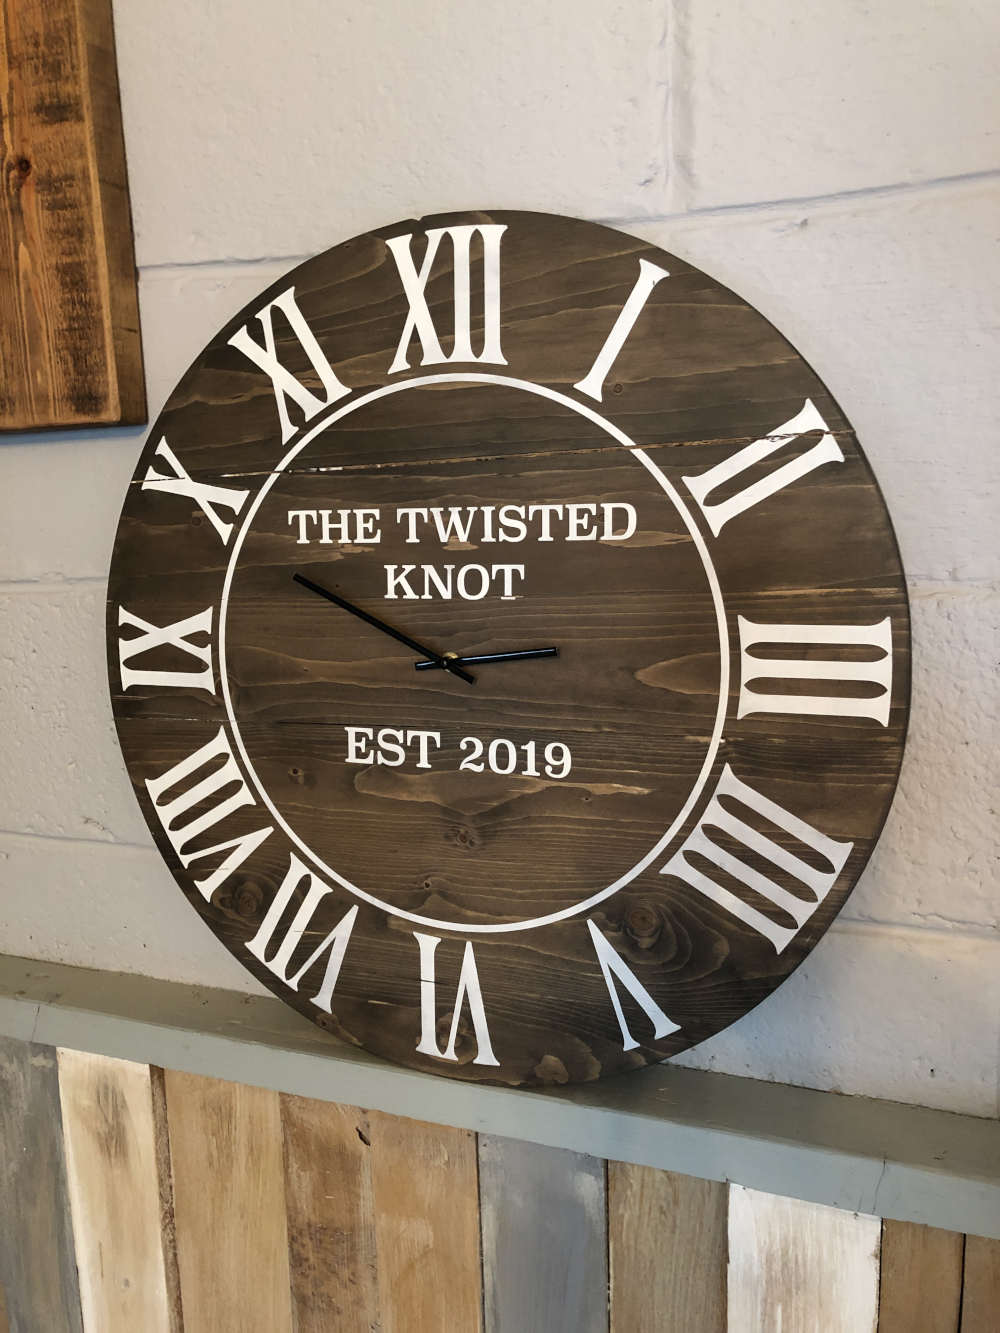 Slatted Circle Clock 45cm x 45cm - £45